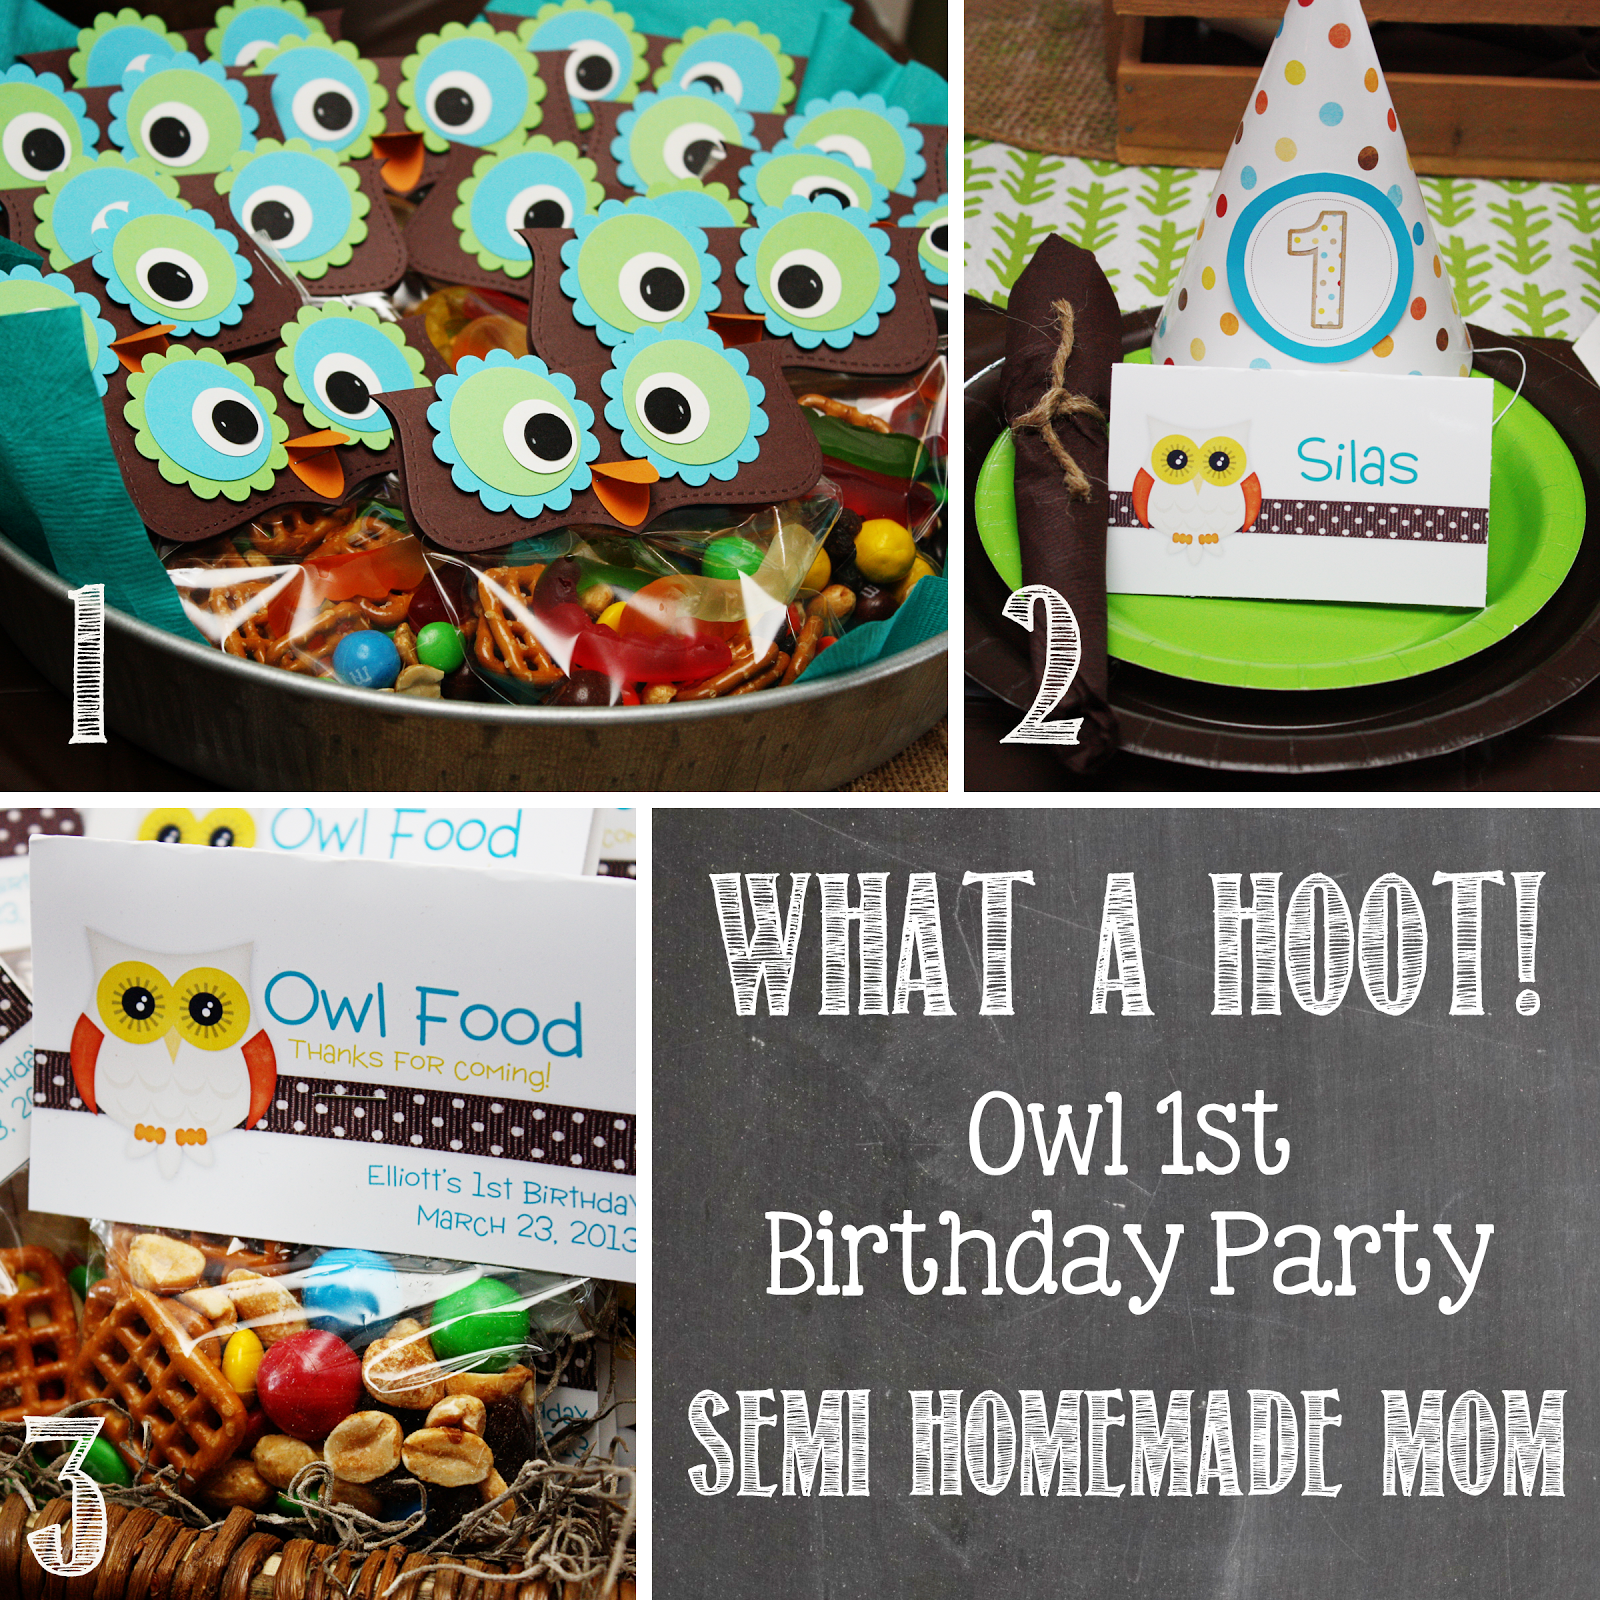 Semi Homemade Mom What a Hoot Owl 1st Birthday Party check out